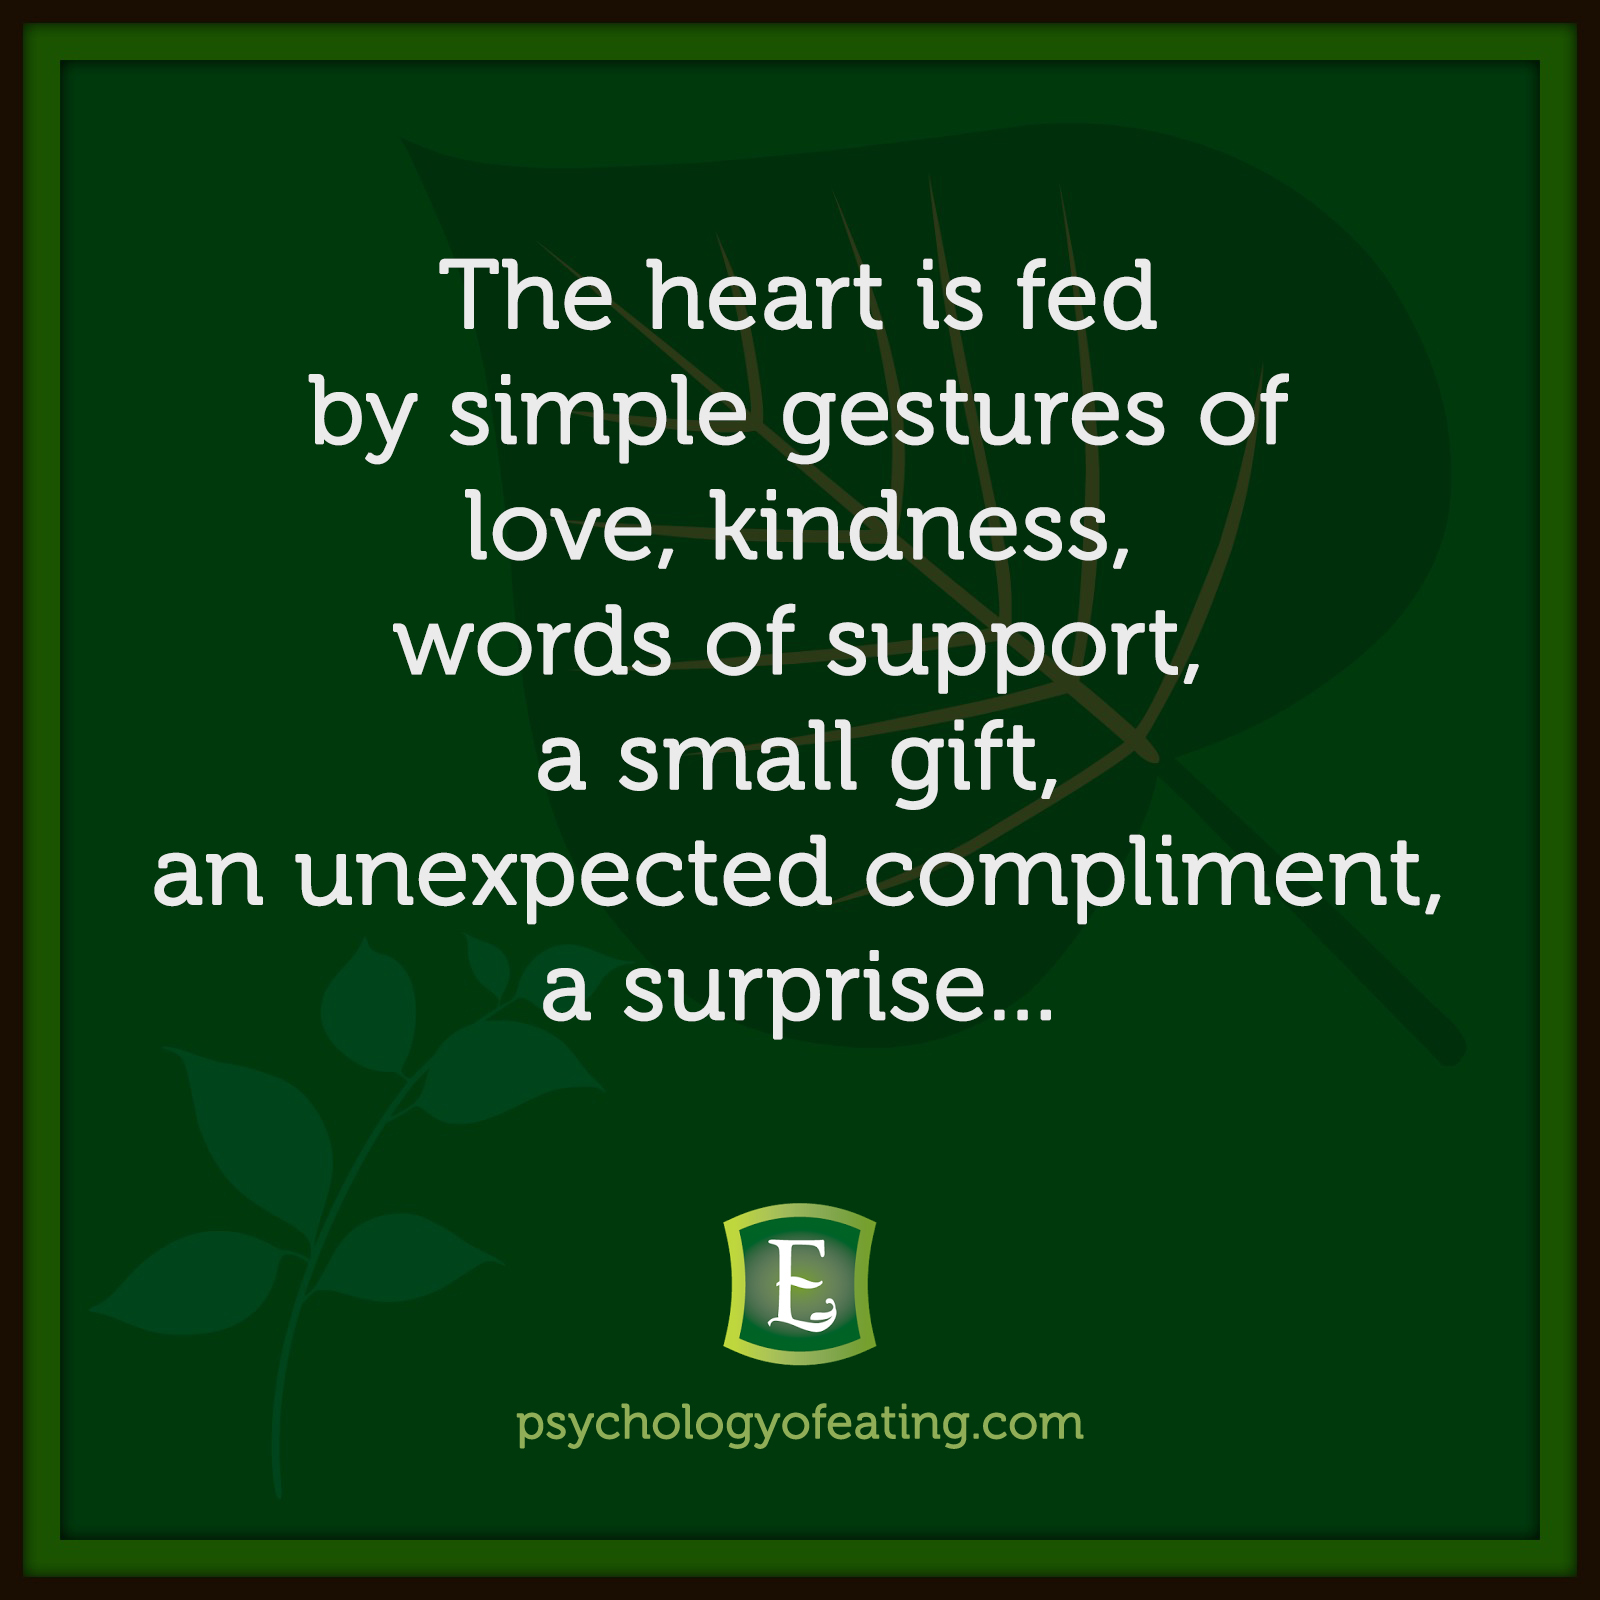 The heart is fed by simple gestures of love, kindness, words of support, a small gift, an unexpected compliment, a surprise…  #health #nutrition #eatingpsychology #IPE